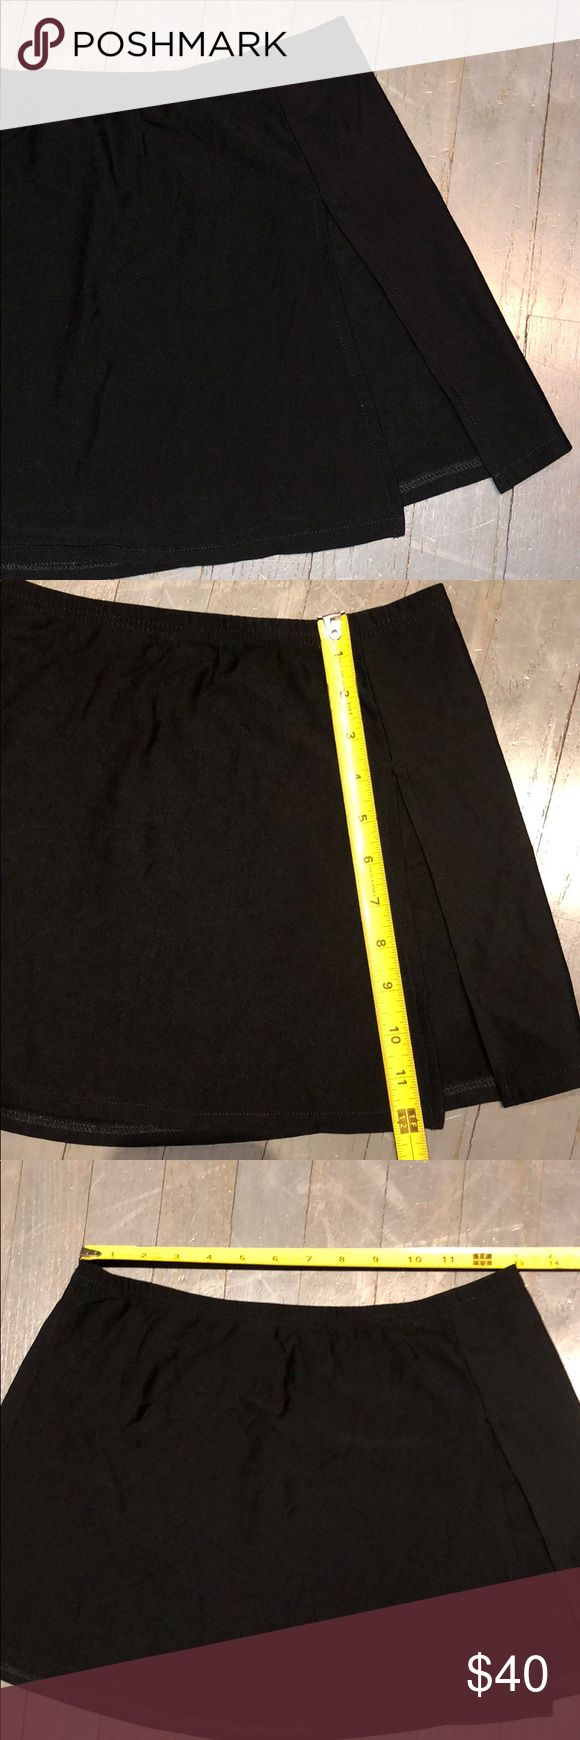 Calvin Klein Side Slit Swim Coverup Mini Skirt Calvin Klein Swimwear Black Side Slit Swim Coverup Skirt Saromg. Measurements in pictures. 89% Tactel Nylon 11% Lycra Spandex RN 75585 Made in USA Calvin Klein Swim Sarongs